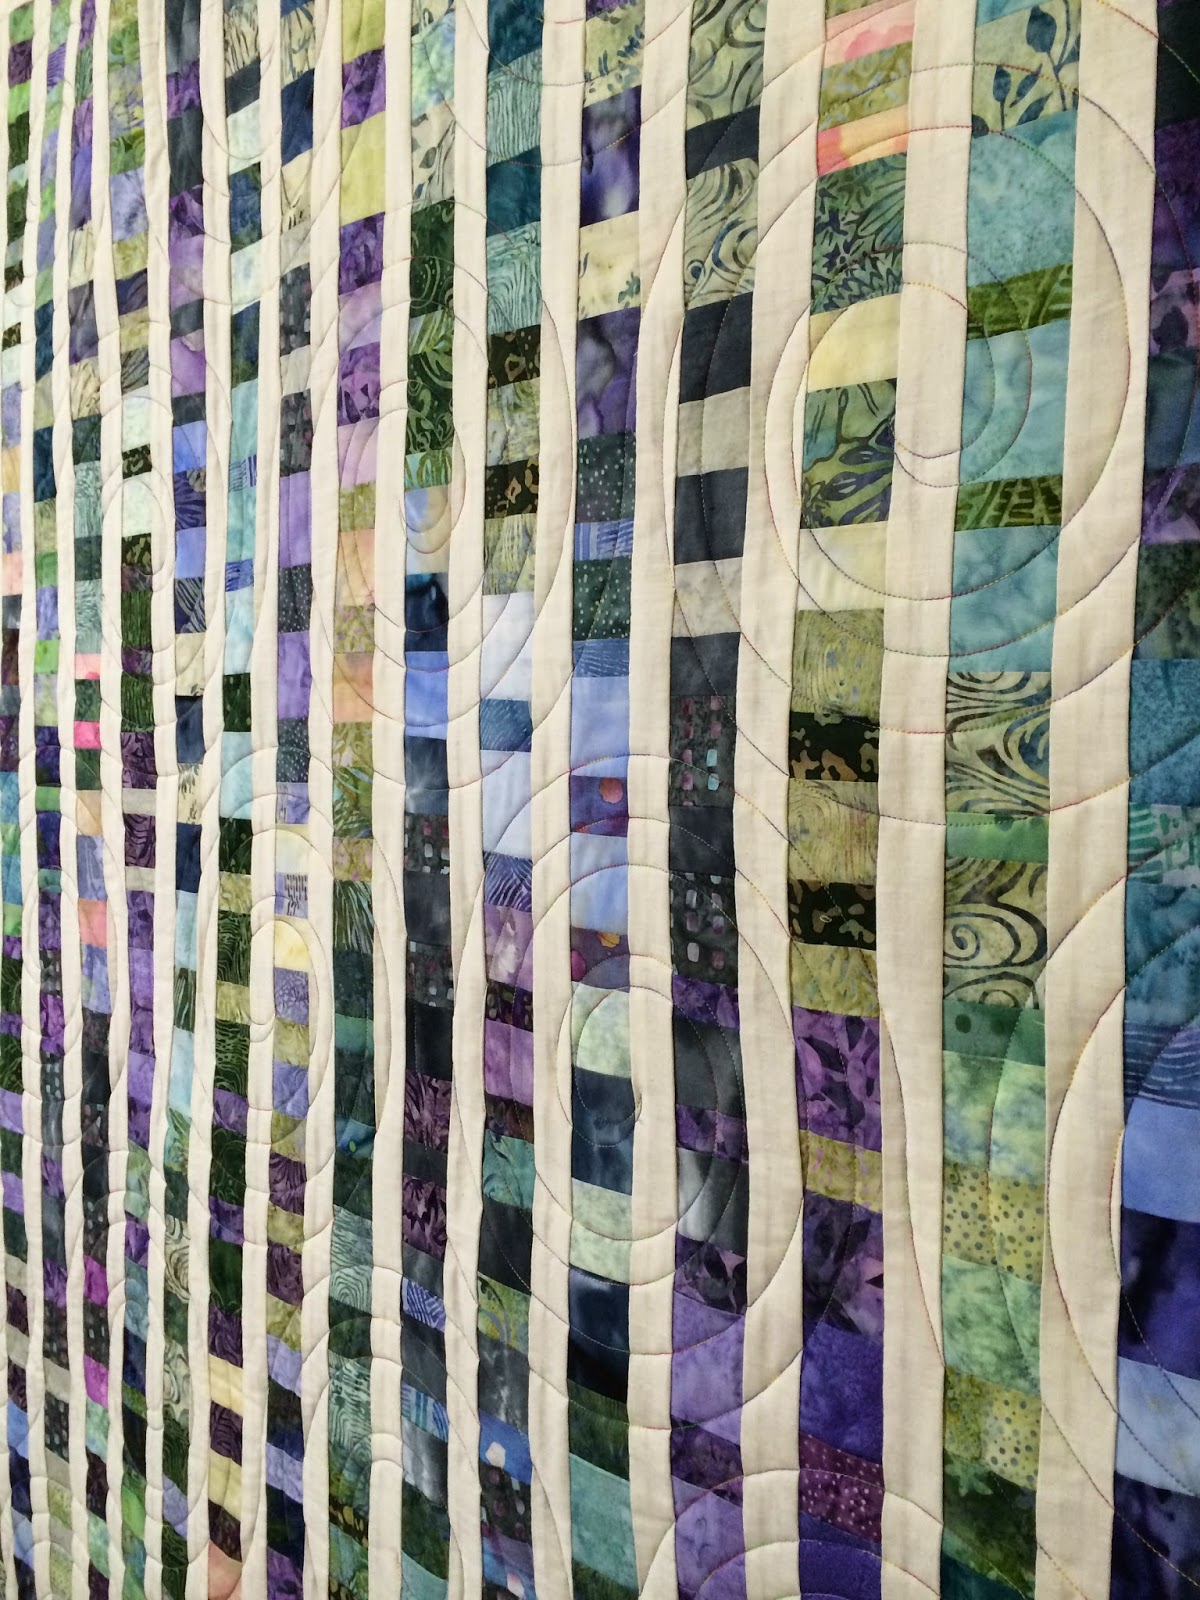 Cynthia Lance's Sea Glass Quilt